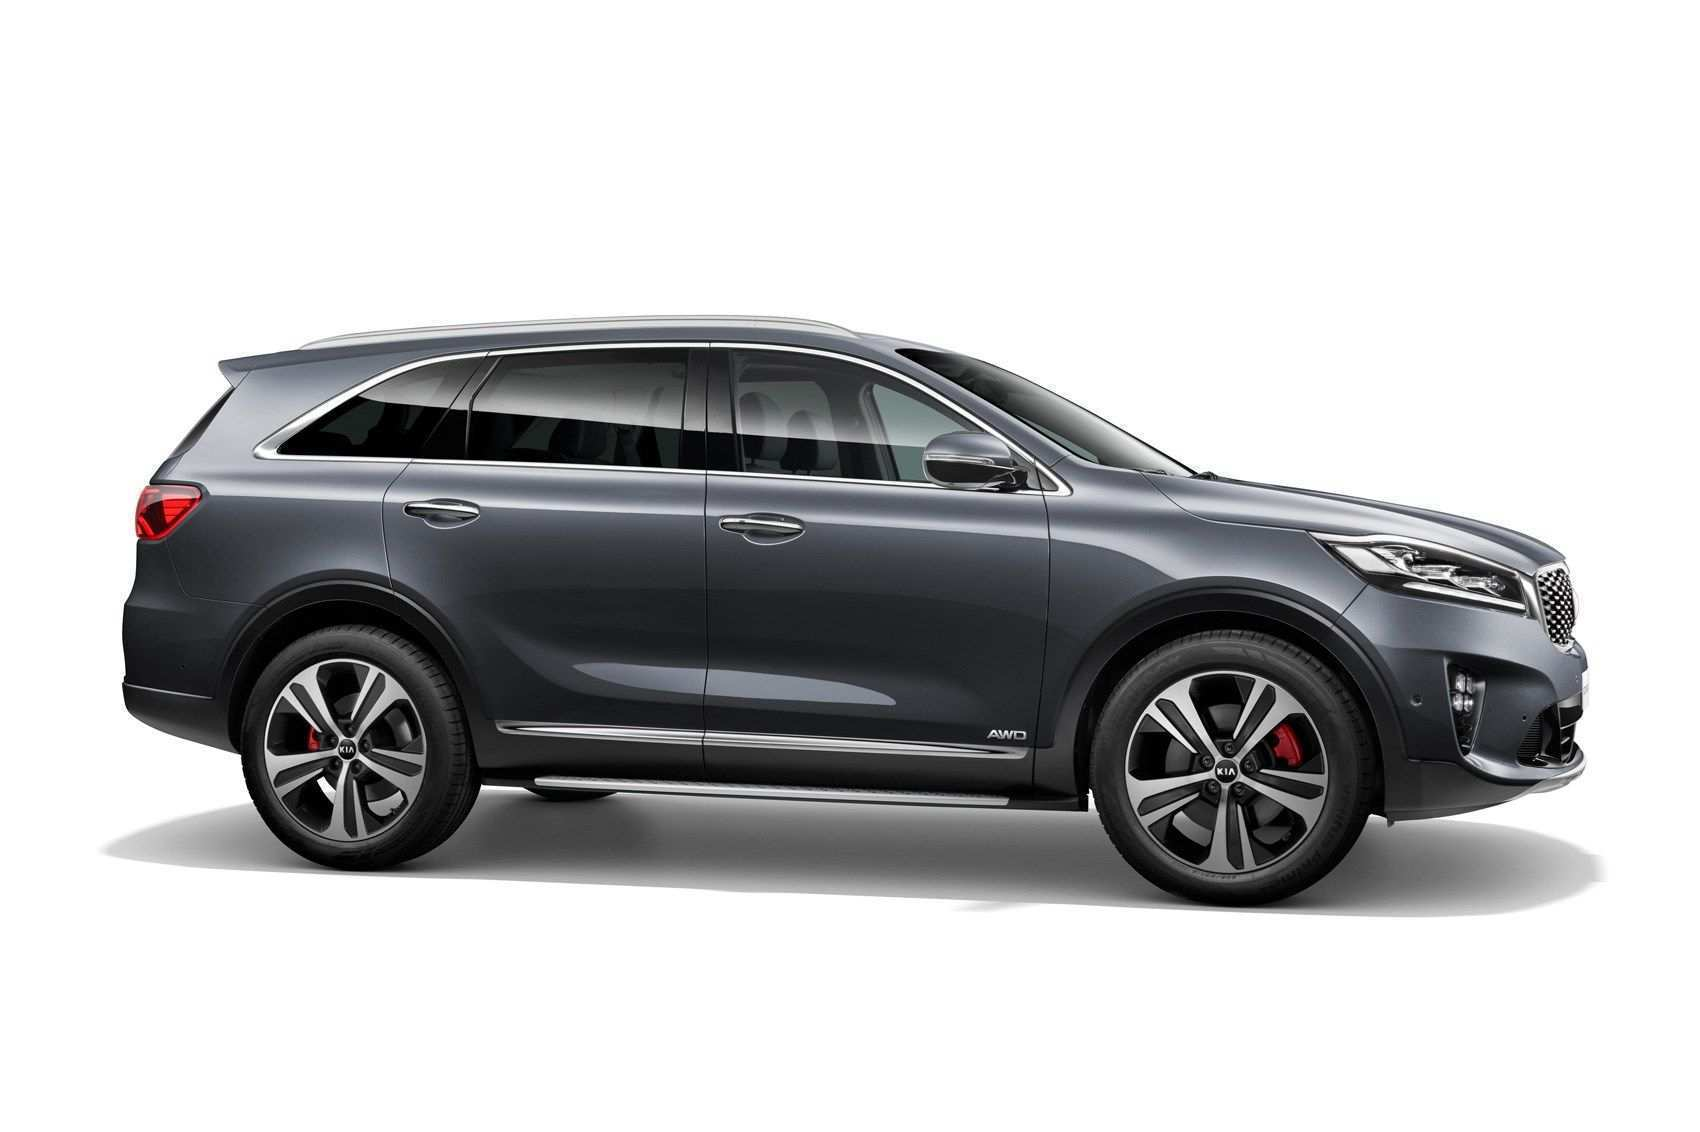 77 All New Kia Sorento 2020 Gt Line Configurations with Kia Sorento 2020 Gt Line